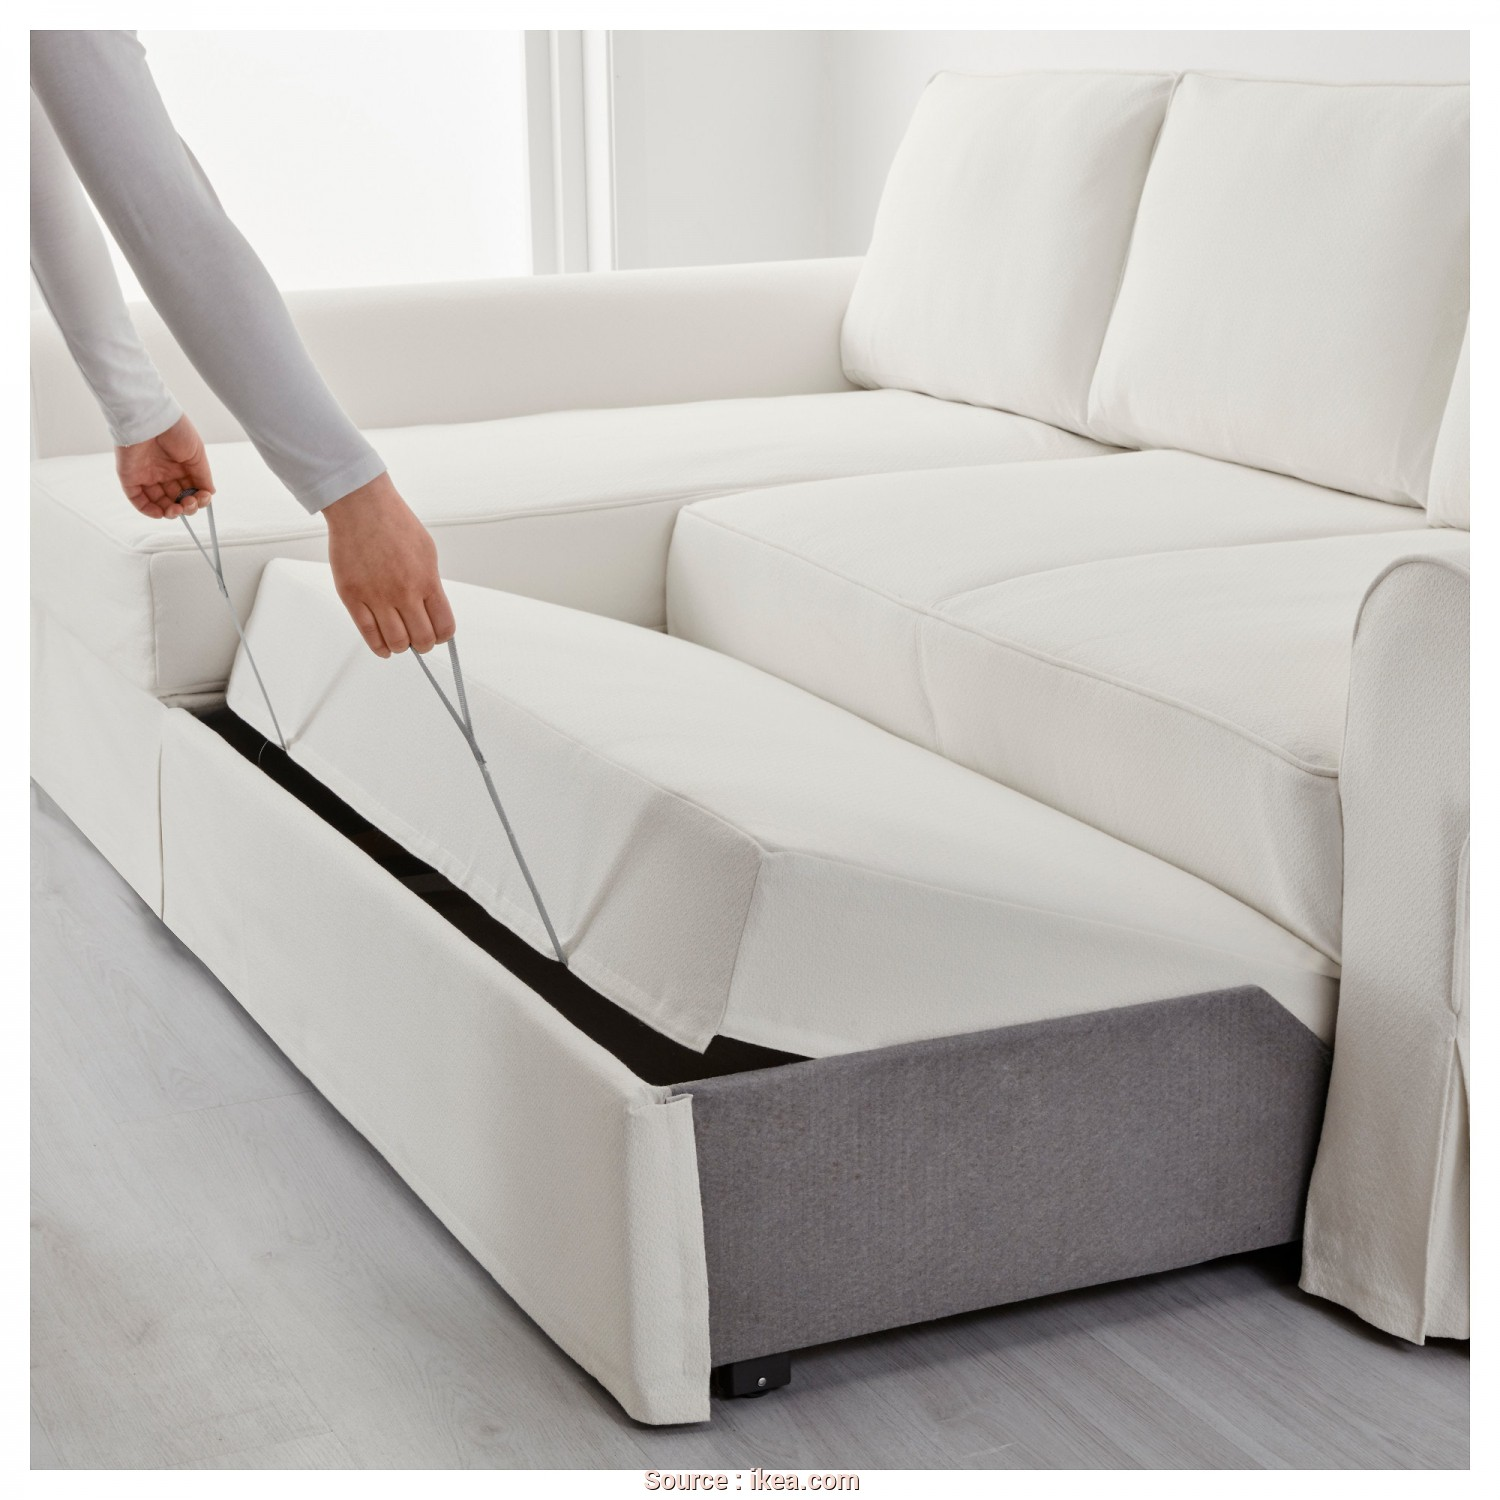 Ikea Backabro Sofa, With Chaise Instructions, Costoso BACKABRO Sofa, With Chaise Longue Hylte White